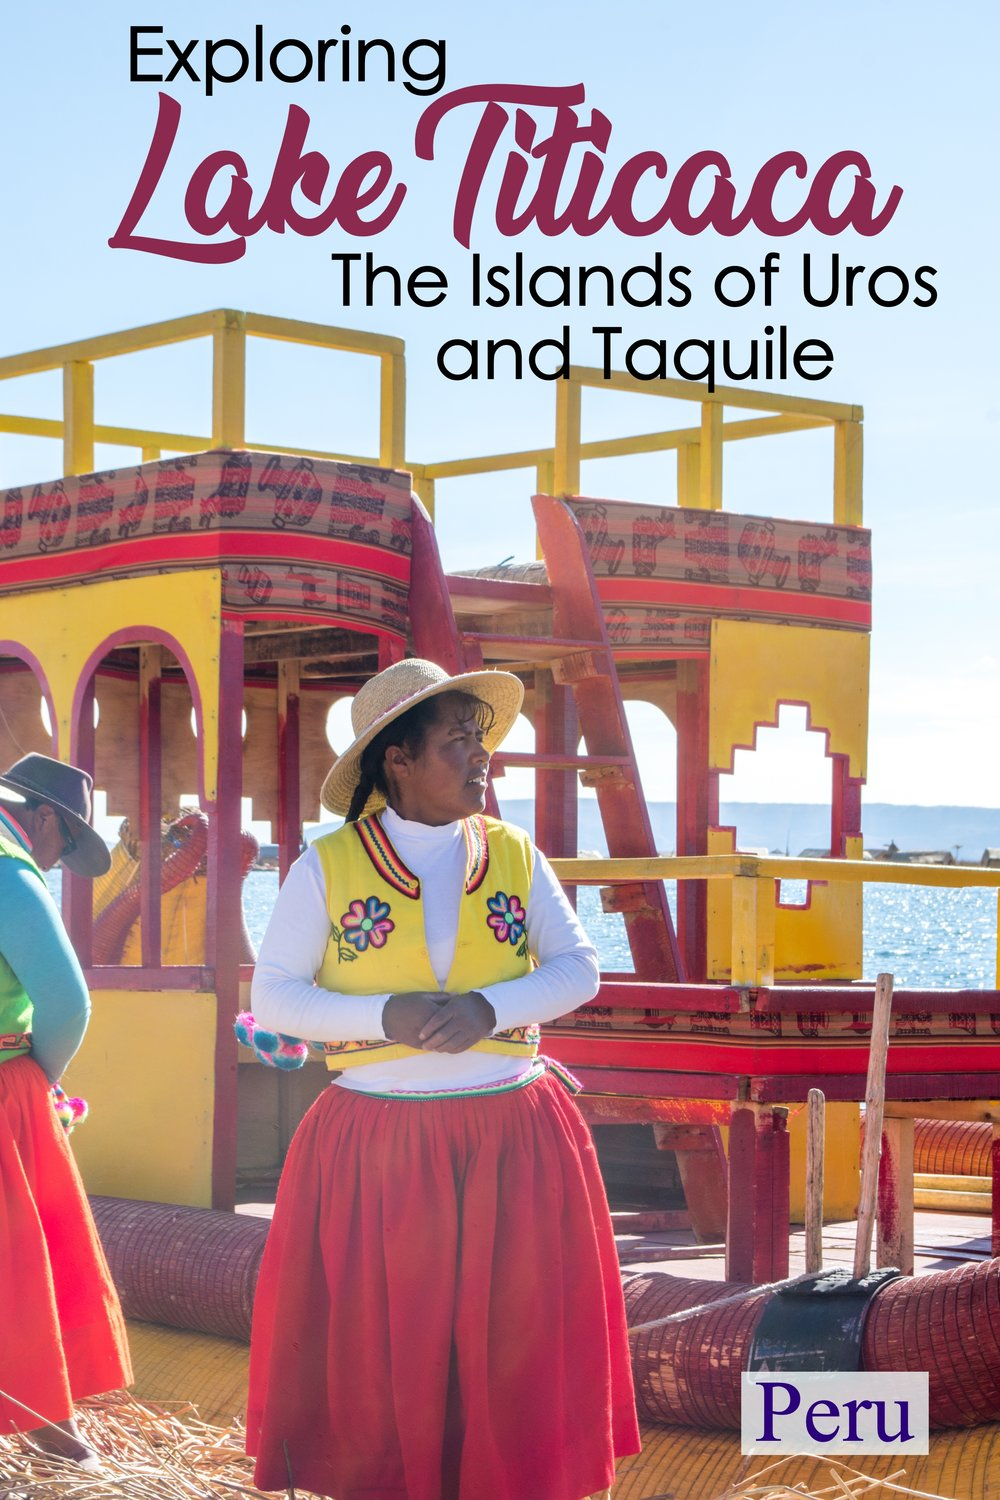 Exploring Lake Titicaca and The Islands of Uros & Taquile | One Day in Puno, Peru #southamerica #laketiticaca #peru